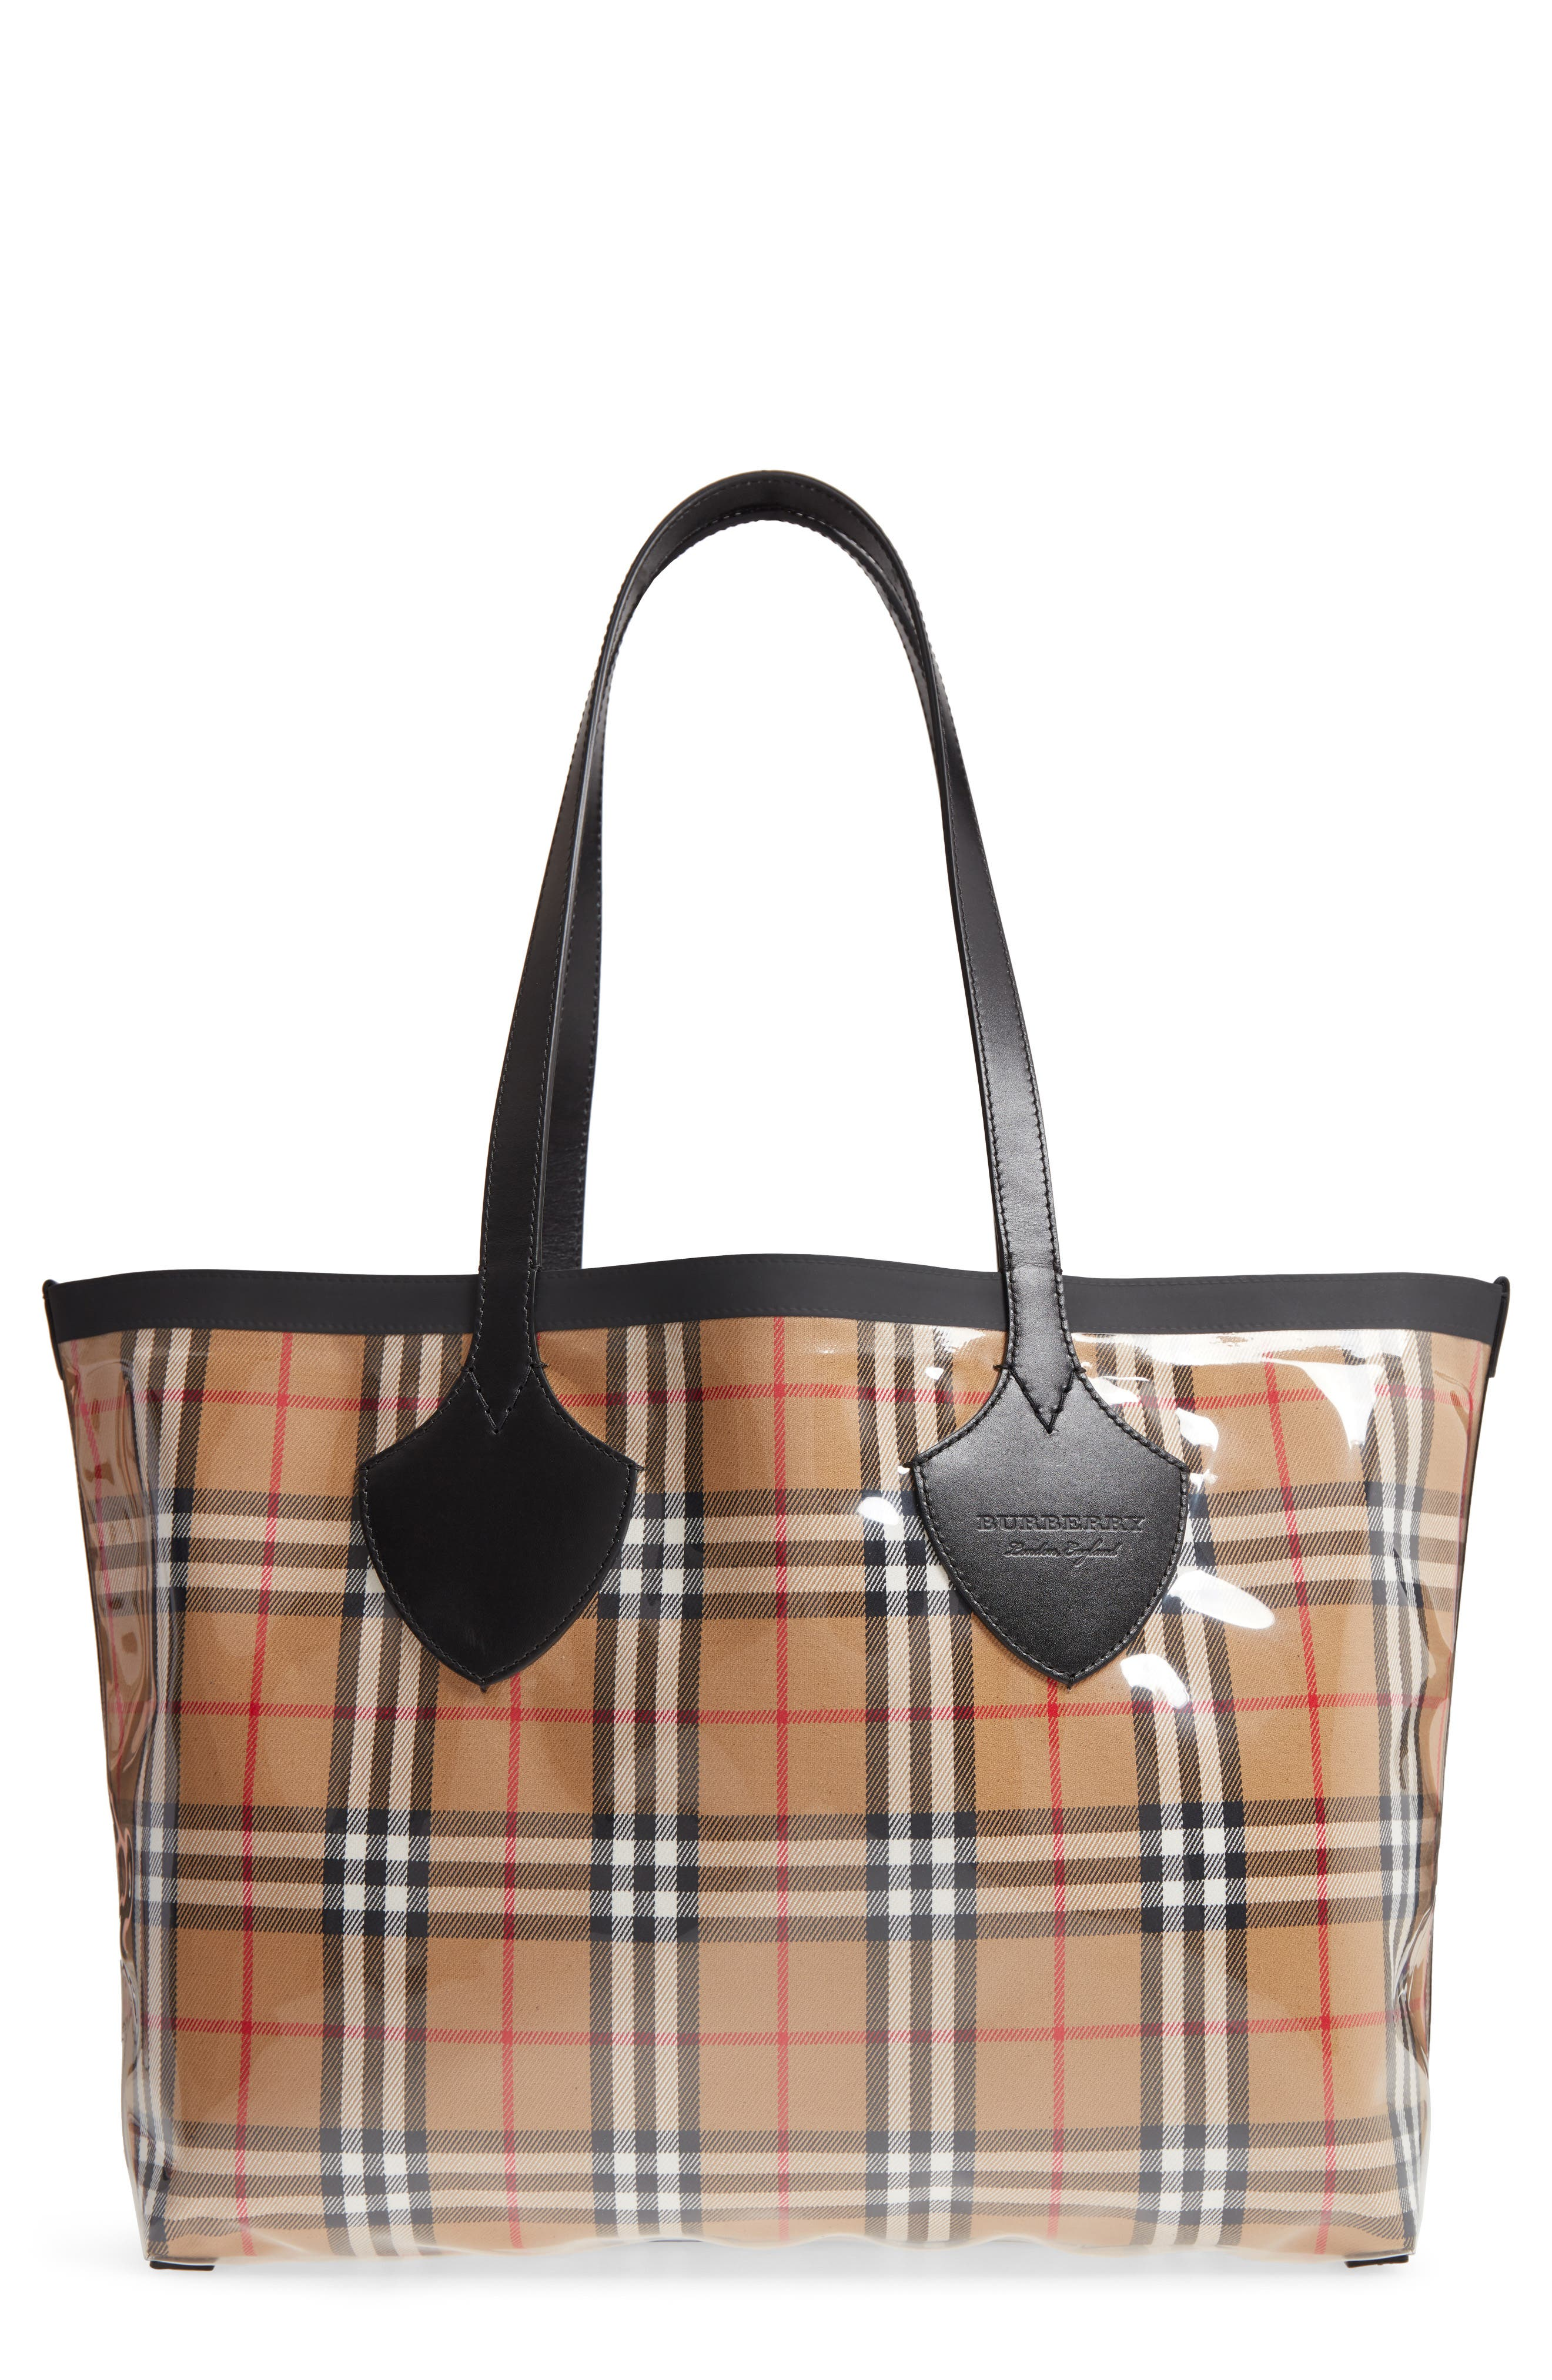 Burberry Giant Vintage Transparent/Check Reversible Tote